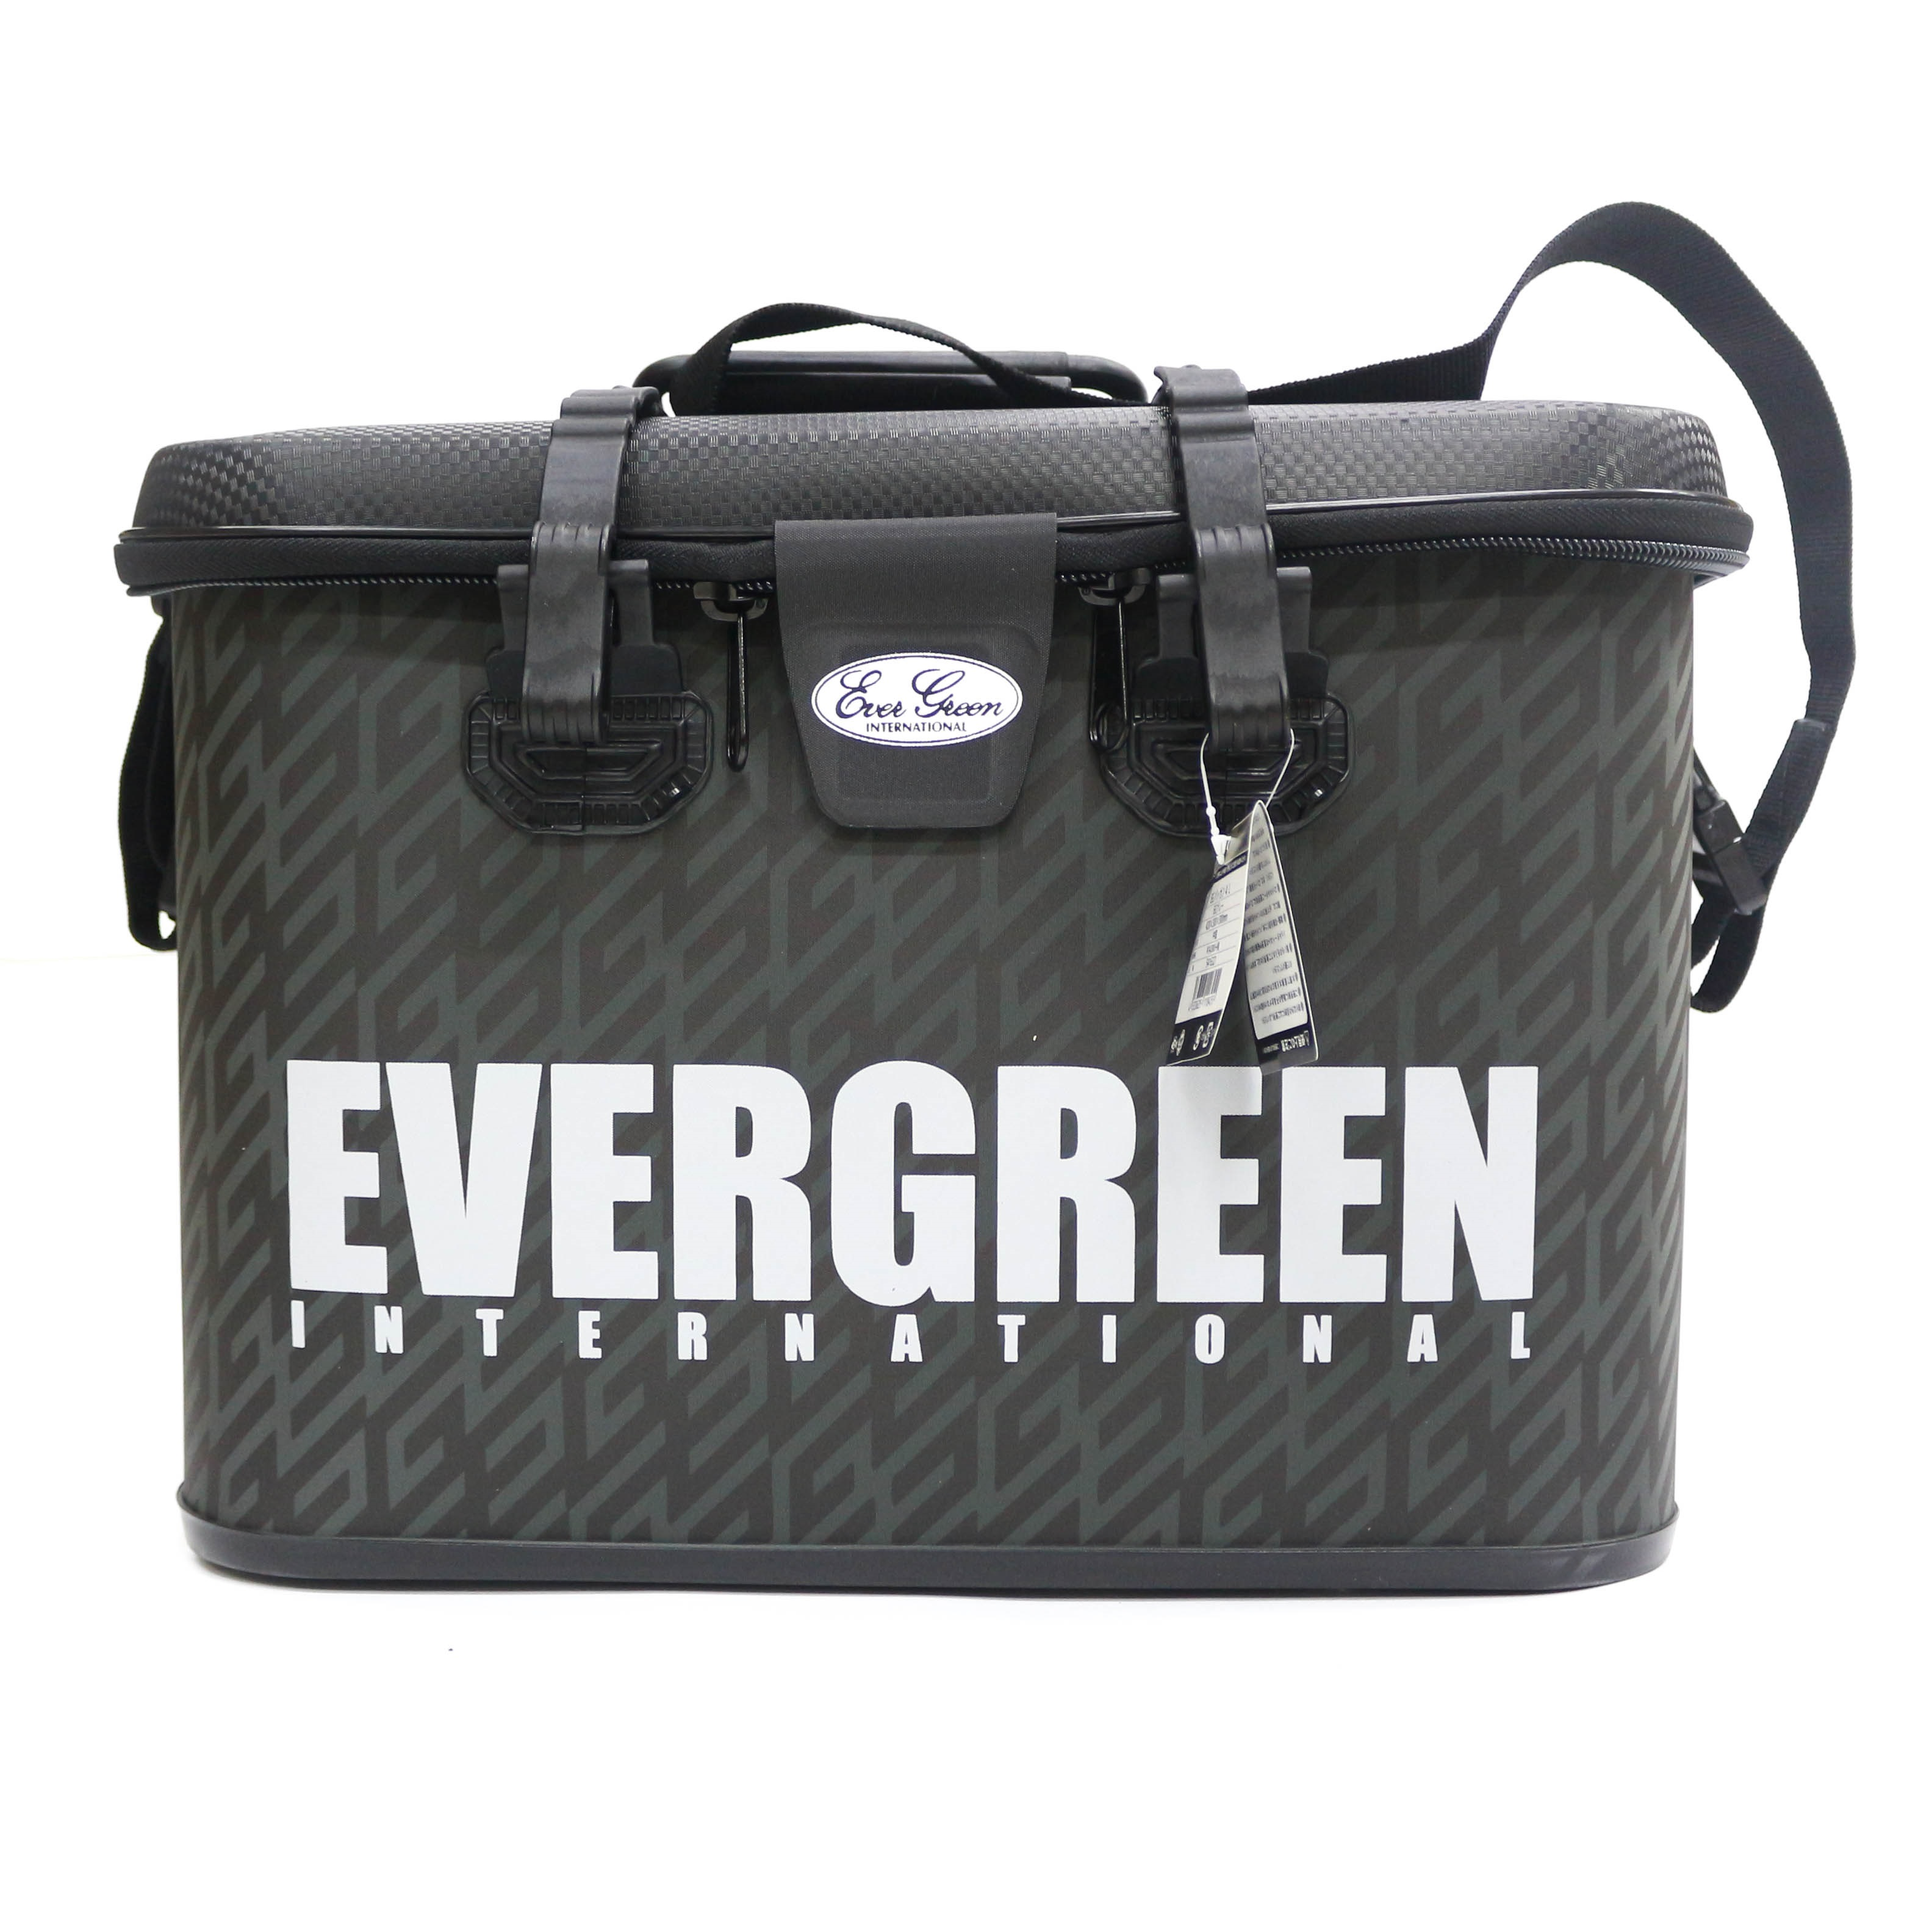 Evergreen Tackle Bag Bakkan Size L 420 x 300 x 300 mm Gray (8455)